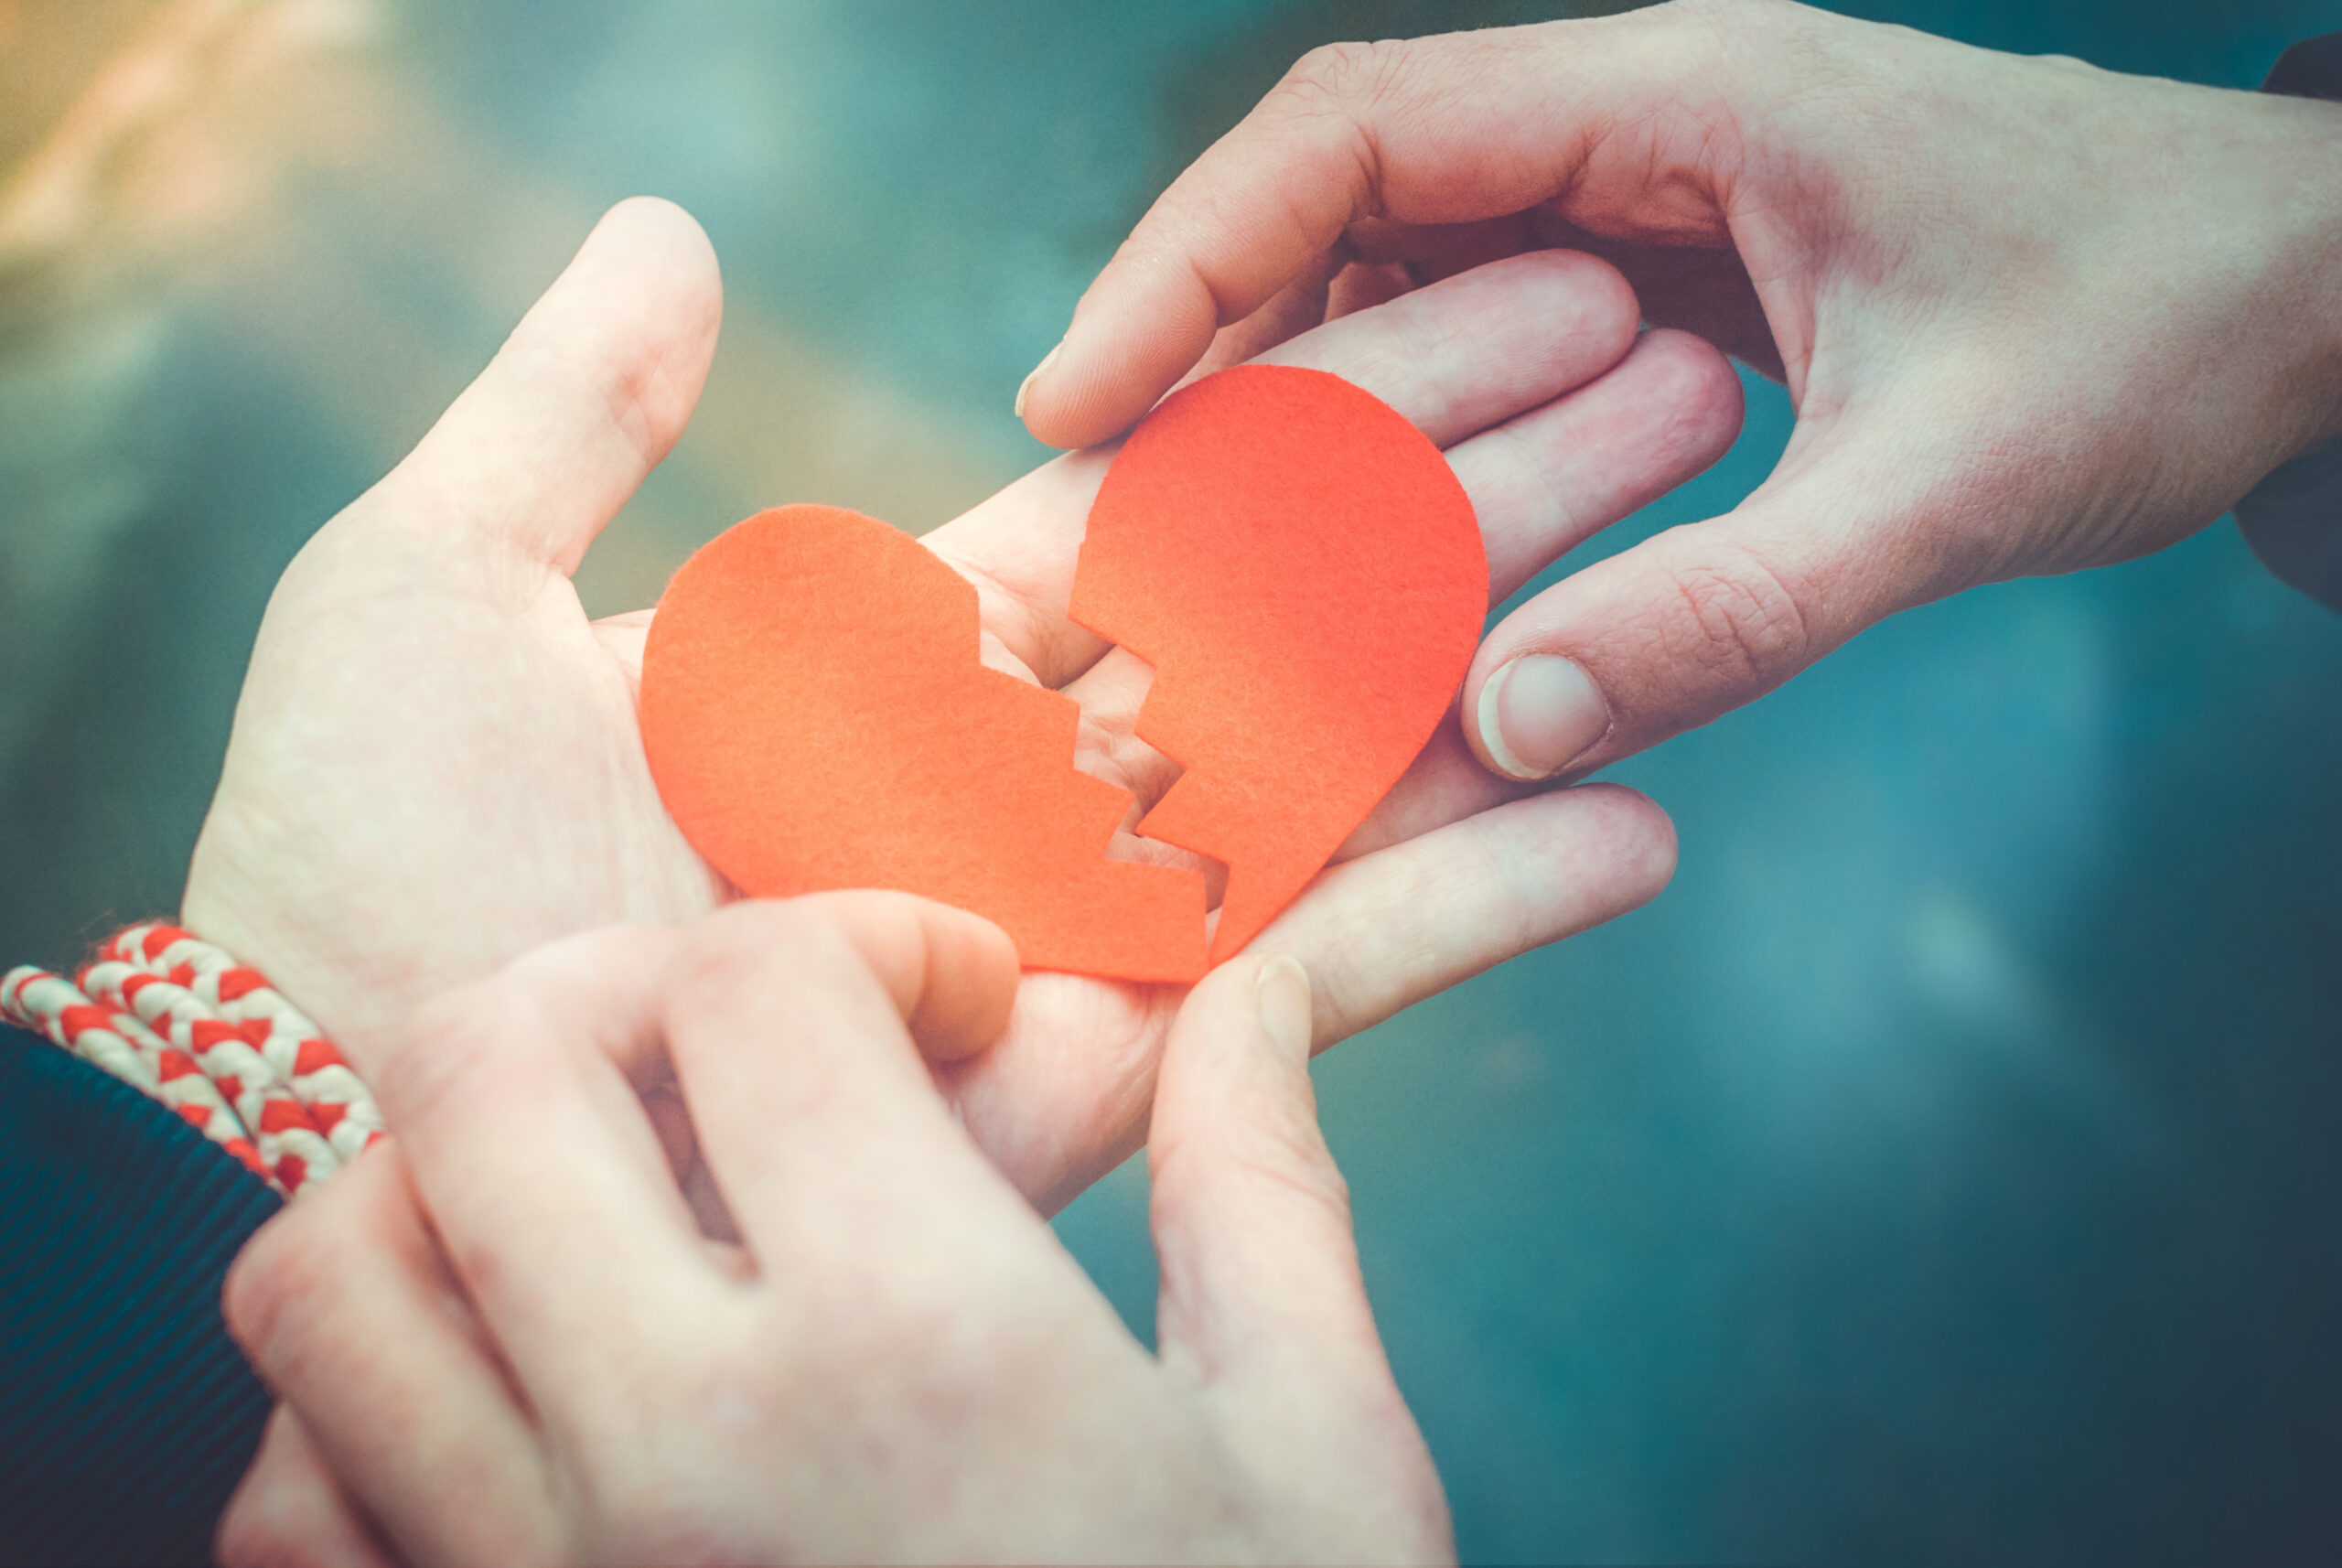 Healthy Dating Habits: How to Break Up With Your Significant Other